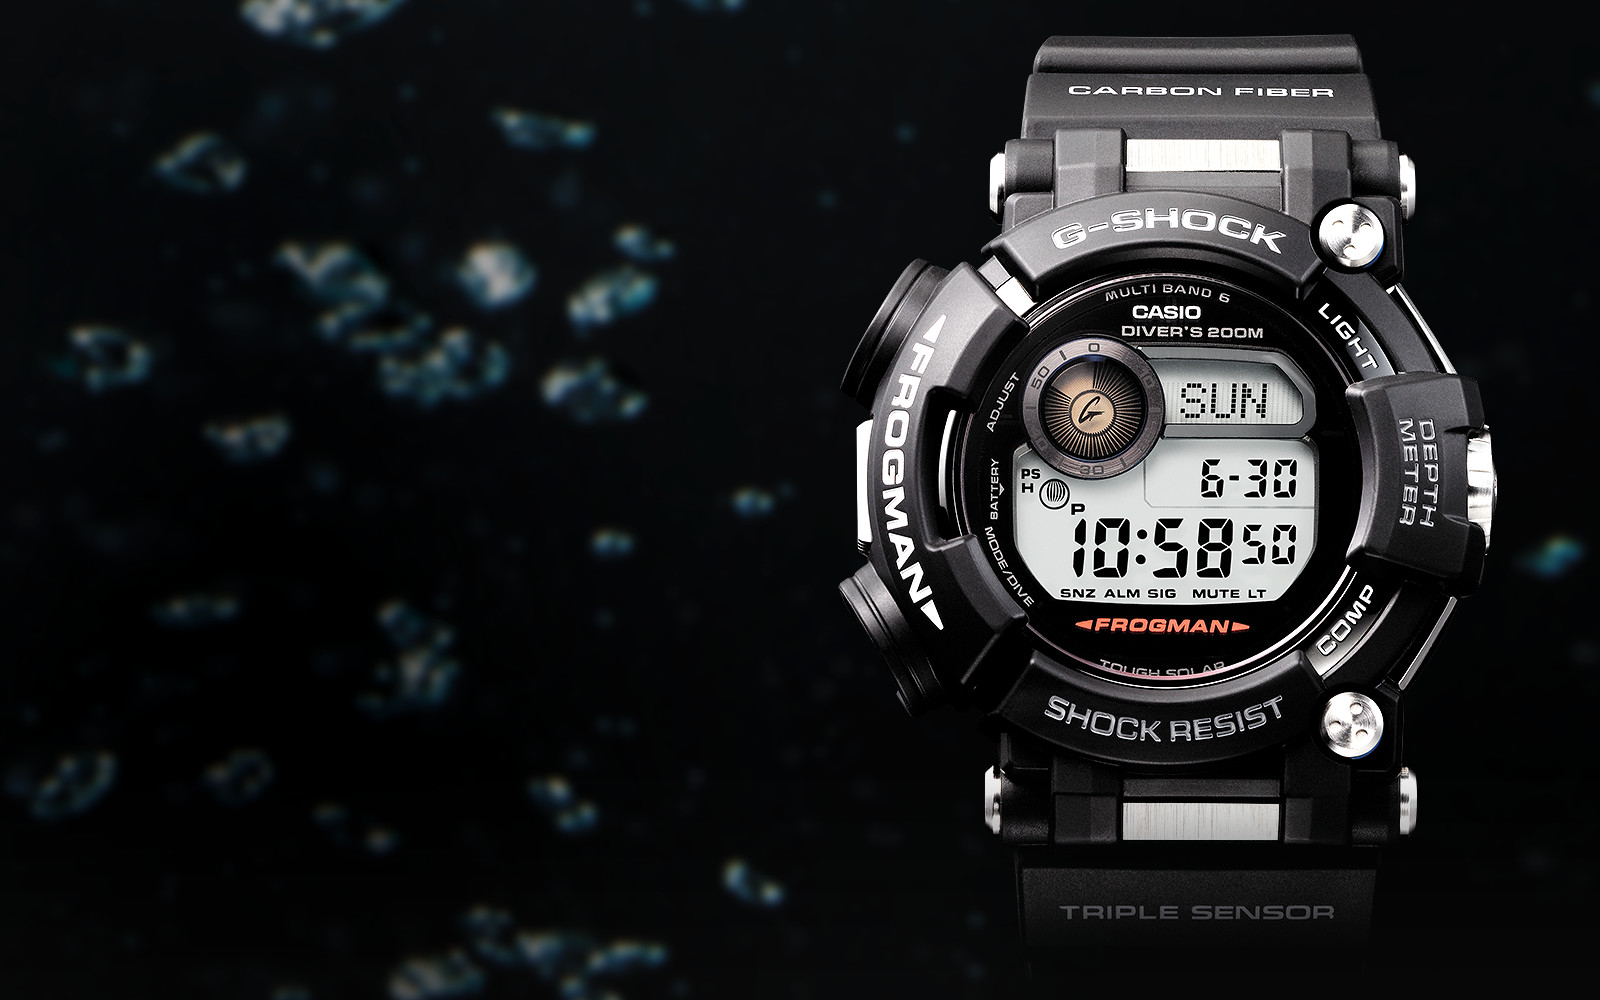 G-Shock-Frogman-GWF-D1000-200M-WATER-RESISTANCE-FOR-DIVERS-2